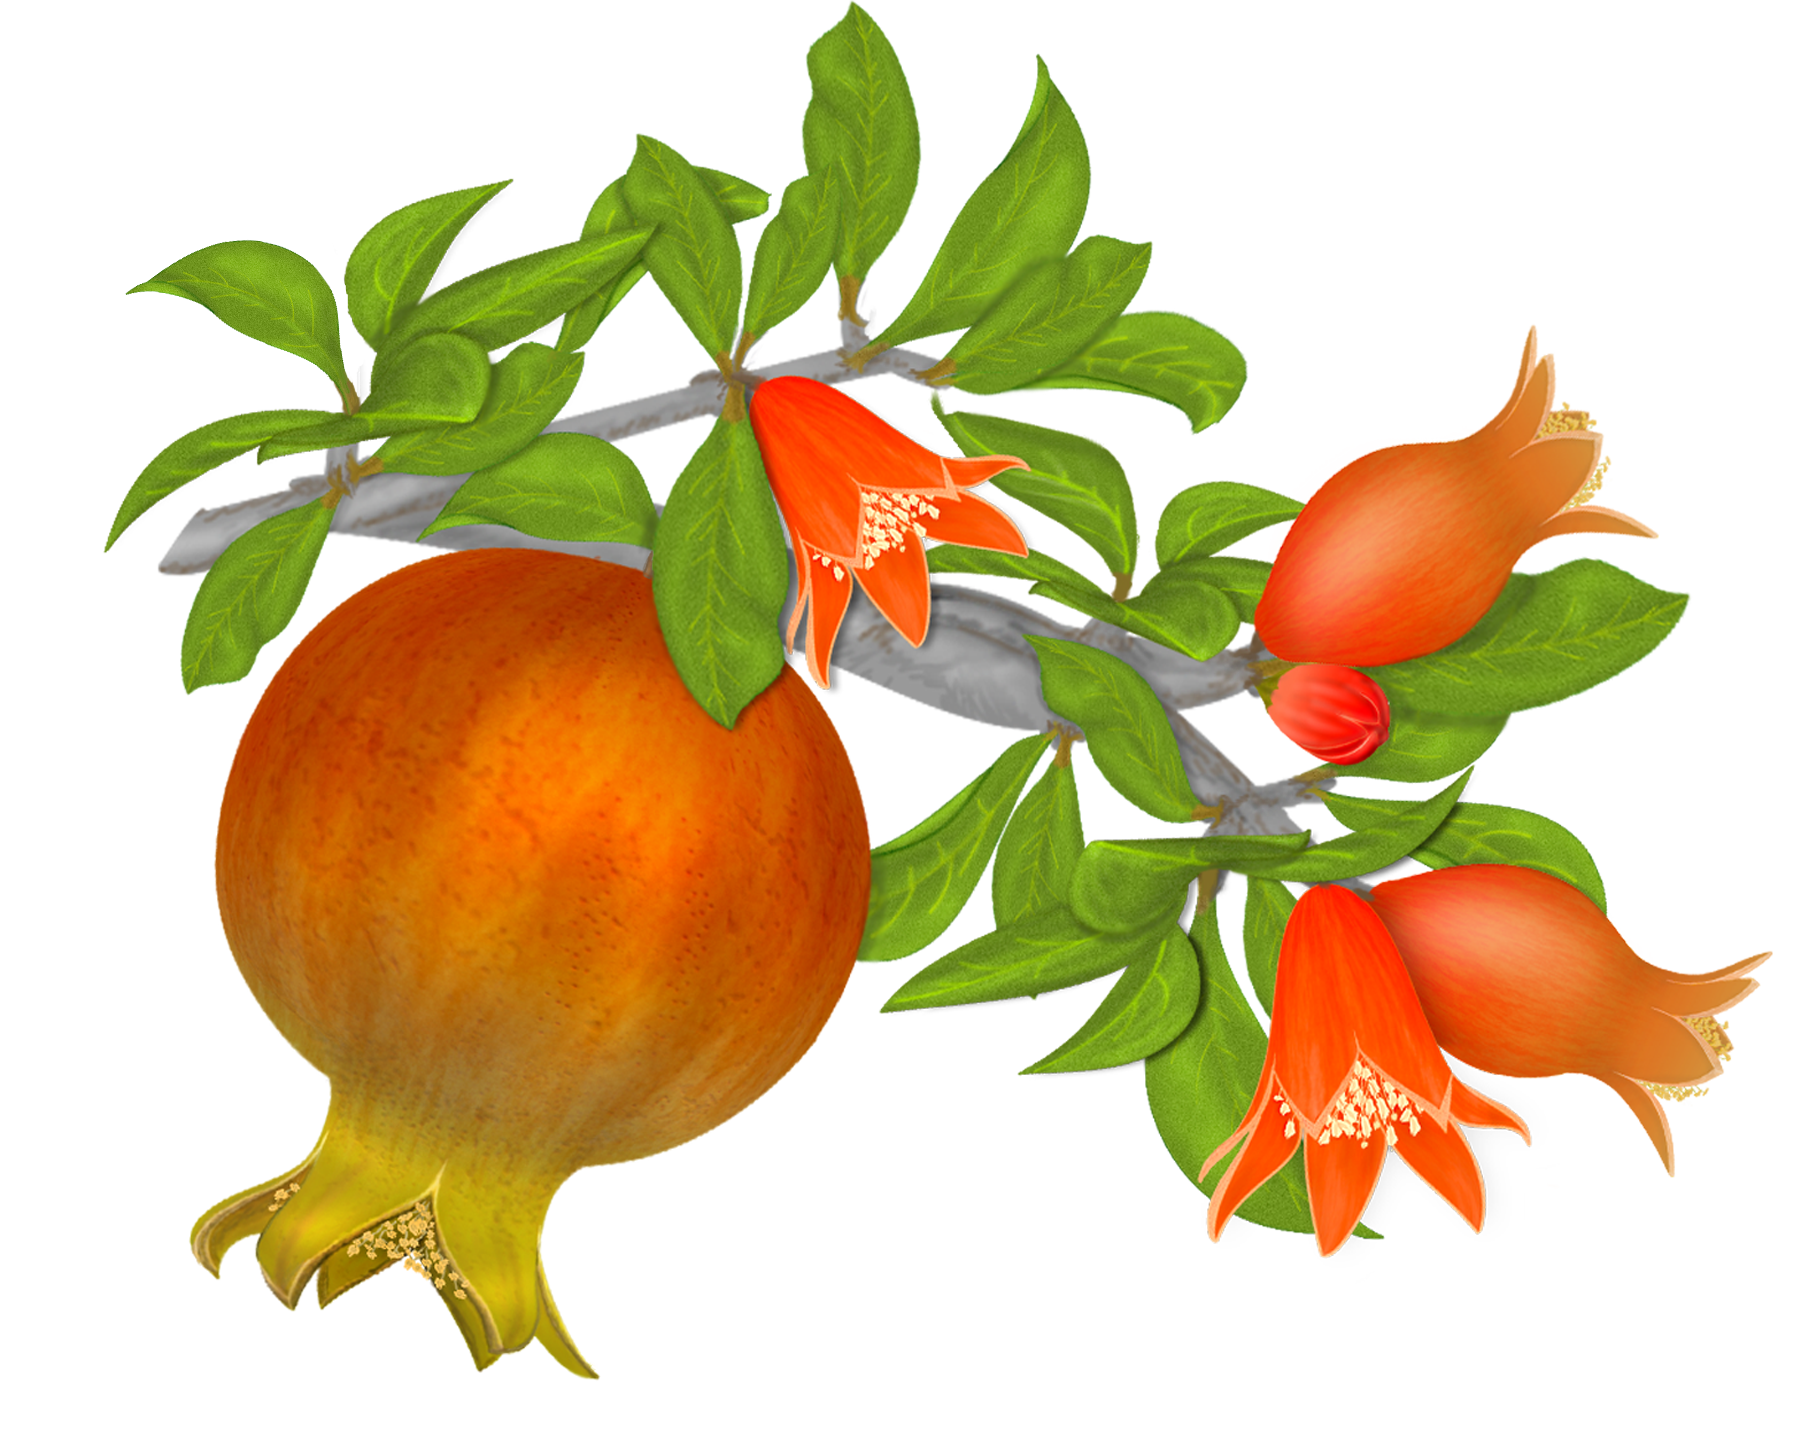 Pomegranate tree png. Free pomegranates vector graphics